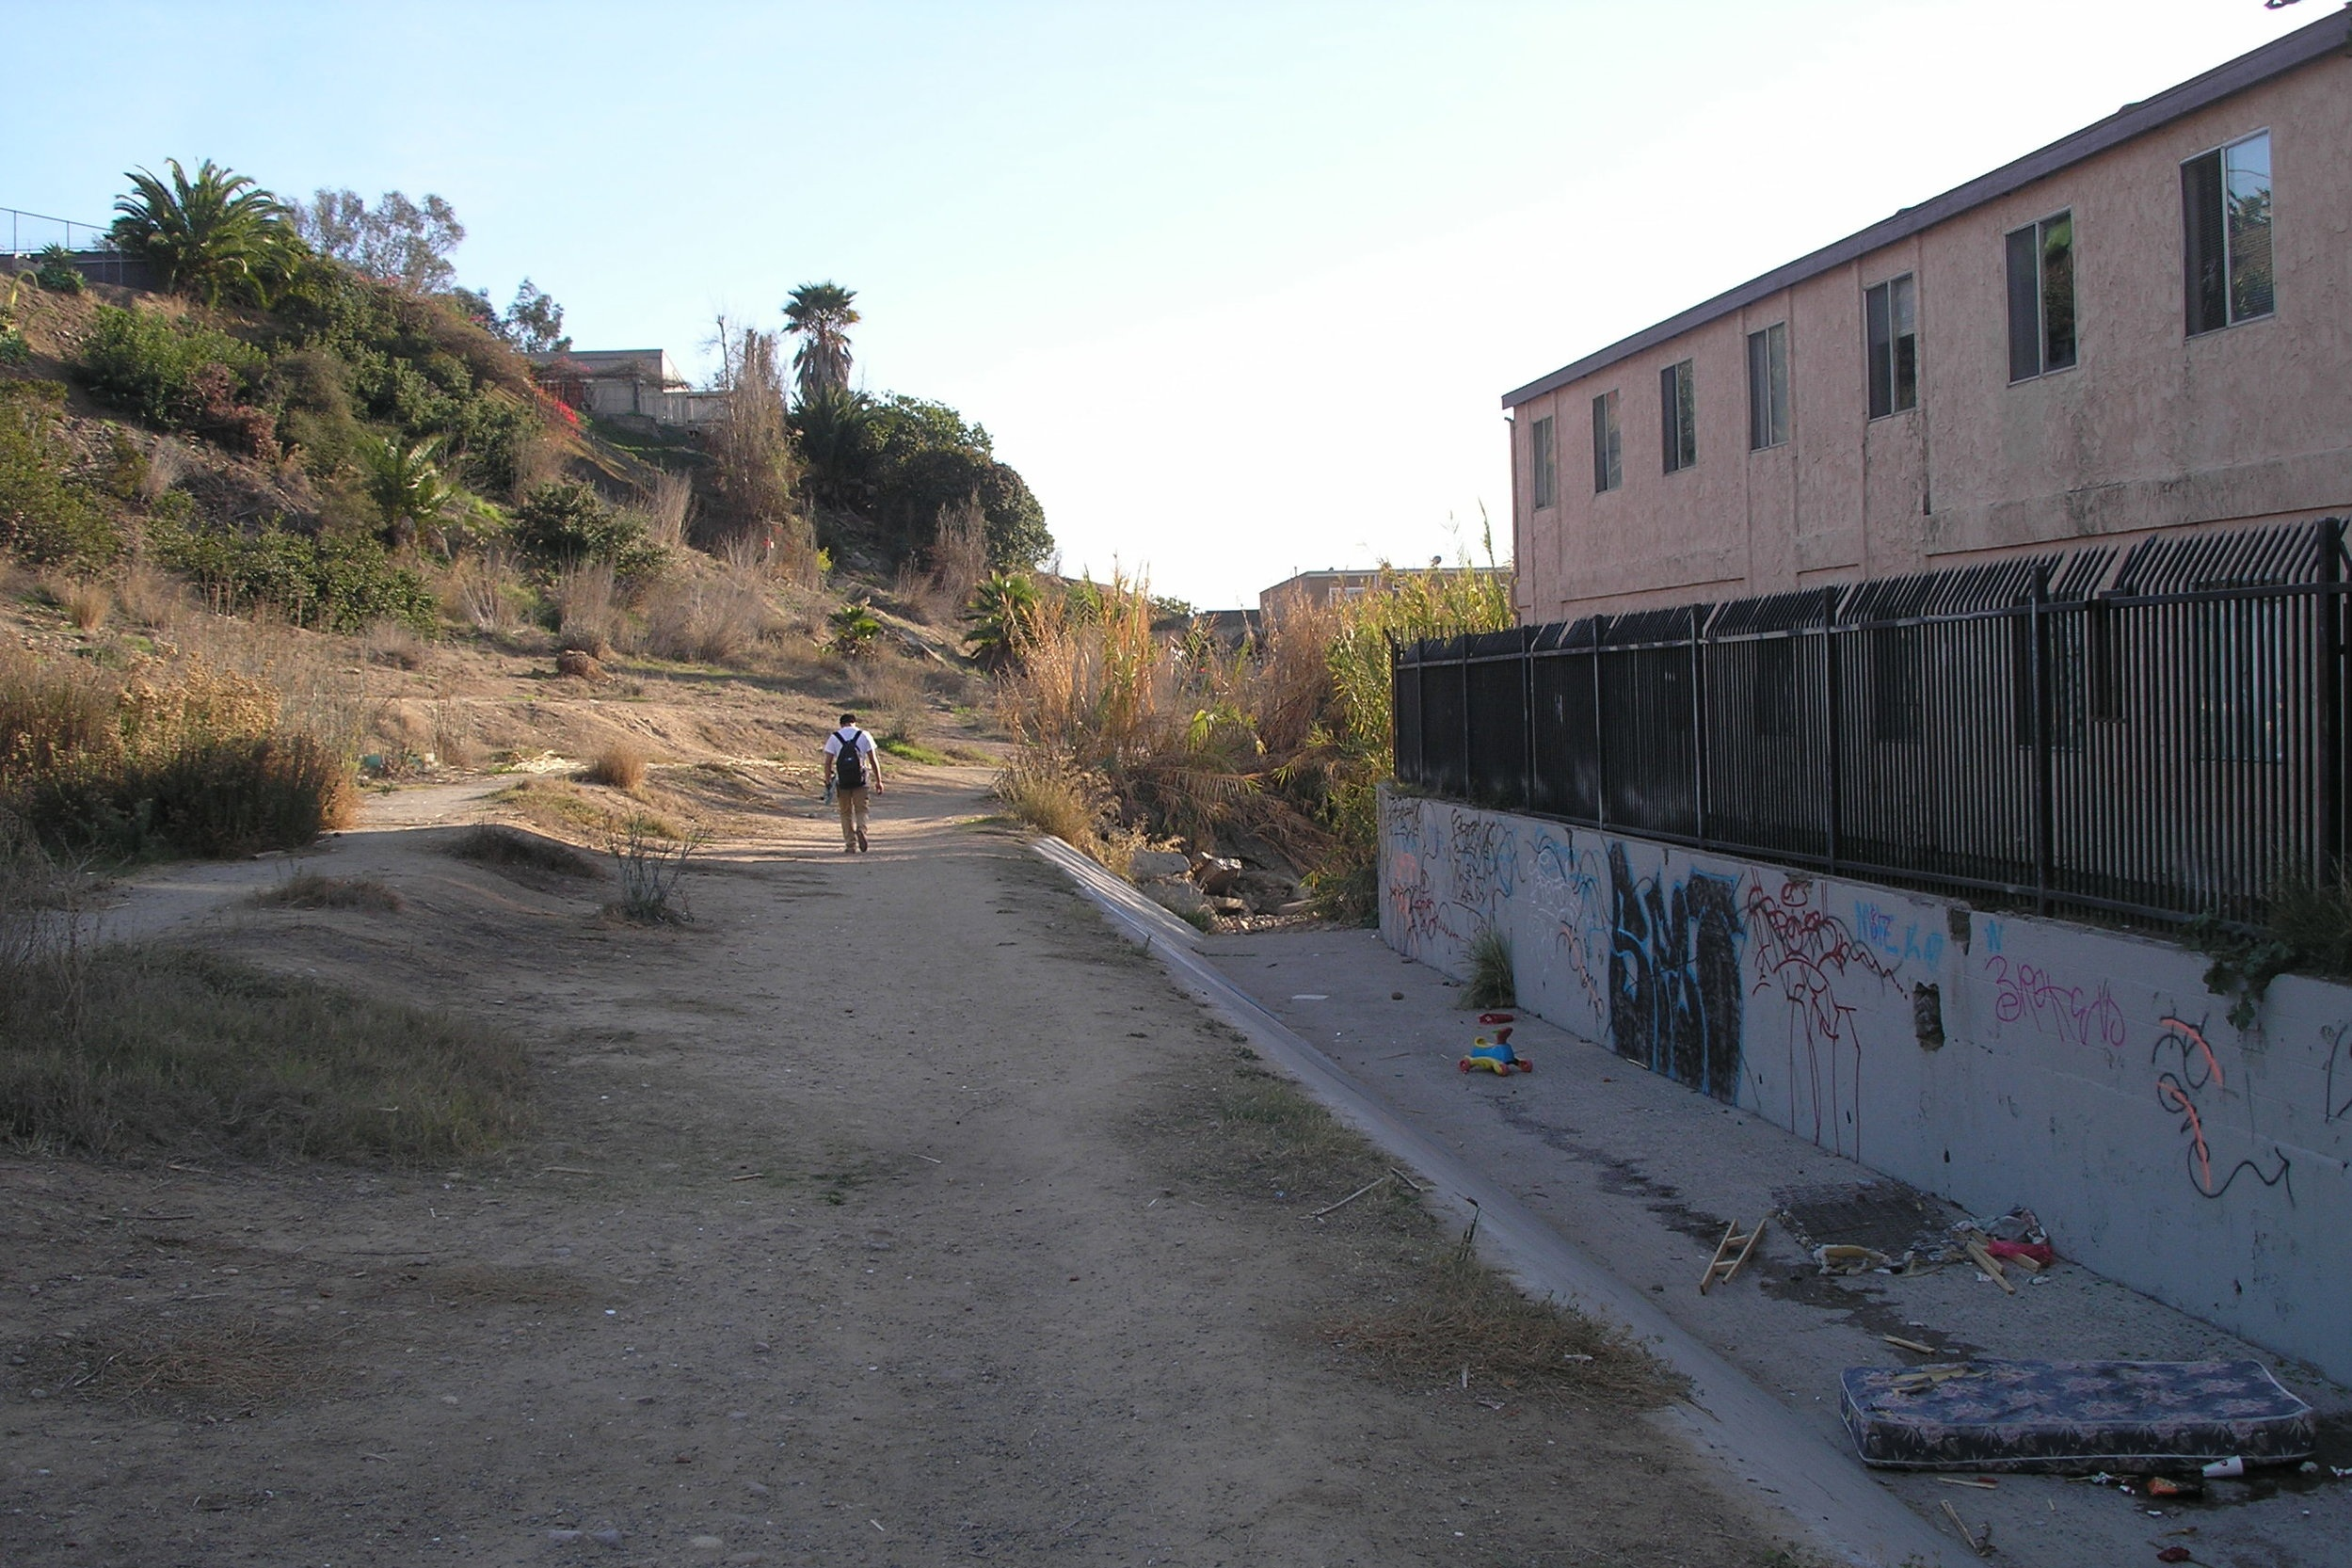 BEFORE:  Auburn Creek in City Heights in 2014 filled with trash and invasive species. This area experienced fires and criminal activity, making it unsafe for the adjacent Somali refugee community, Bandar Salaam,